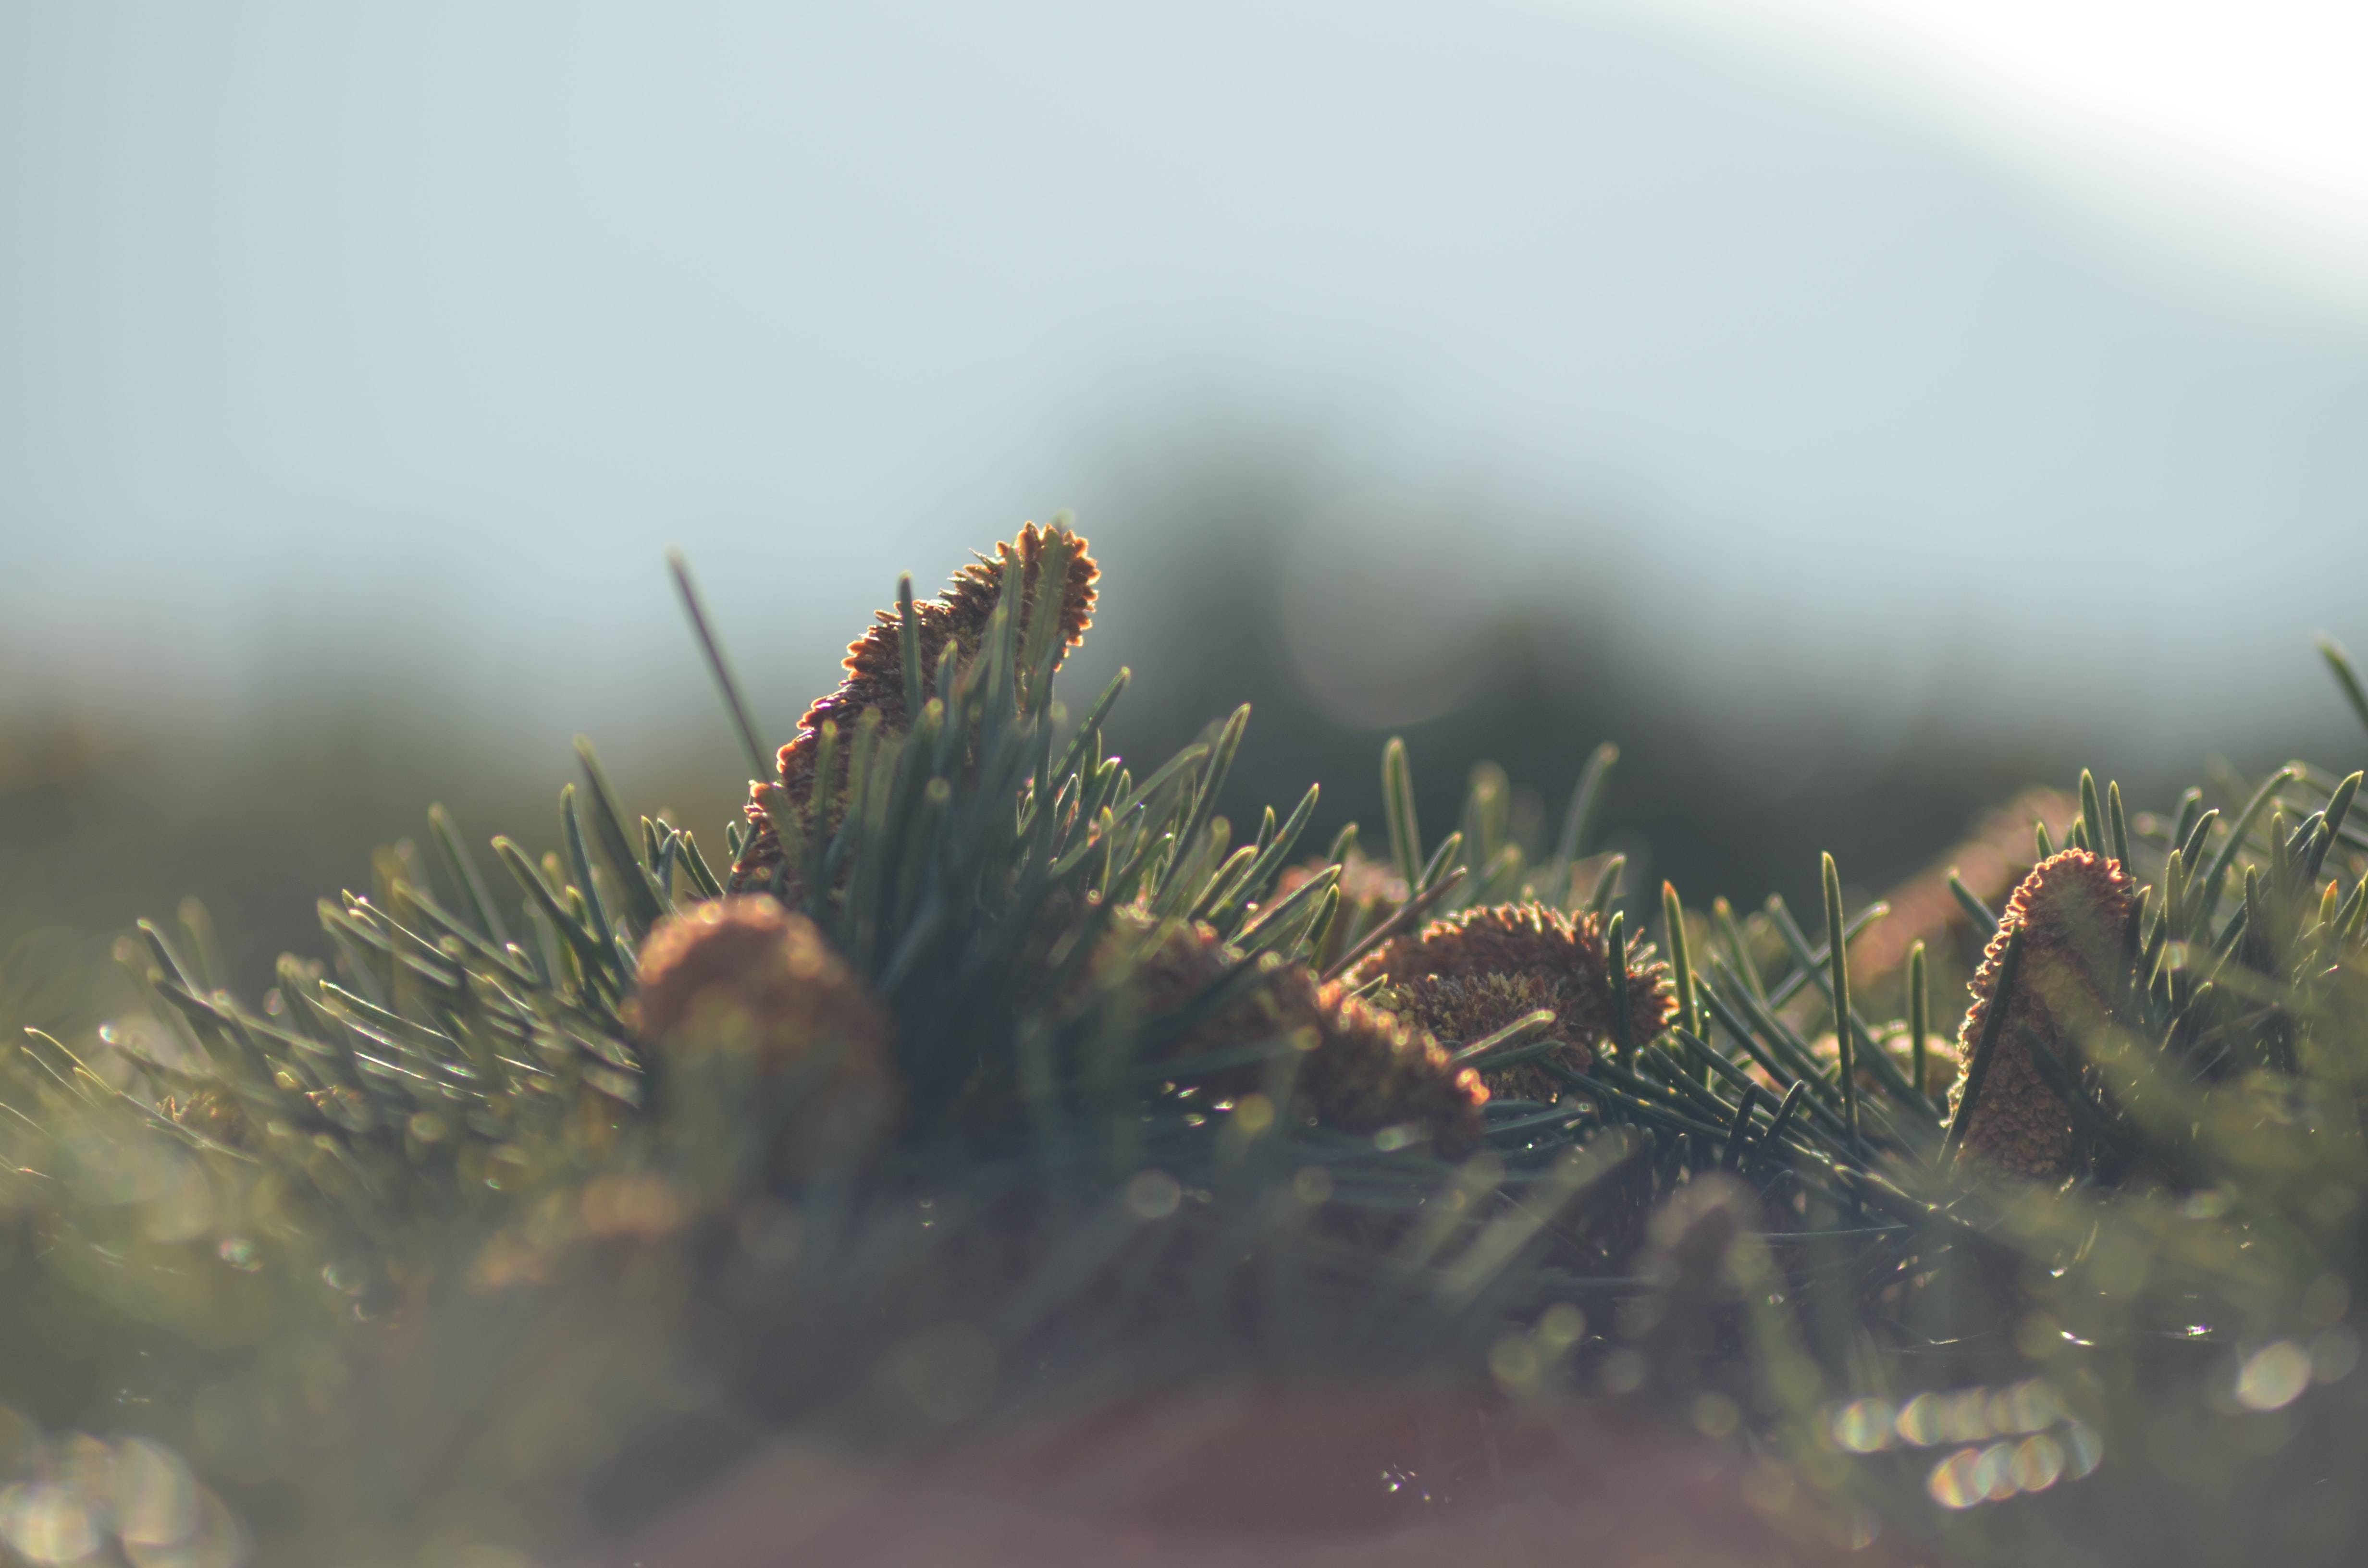 A close-up of pine cones surrounded by pine needles against a blurry background